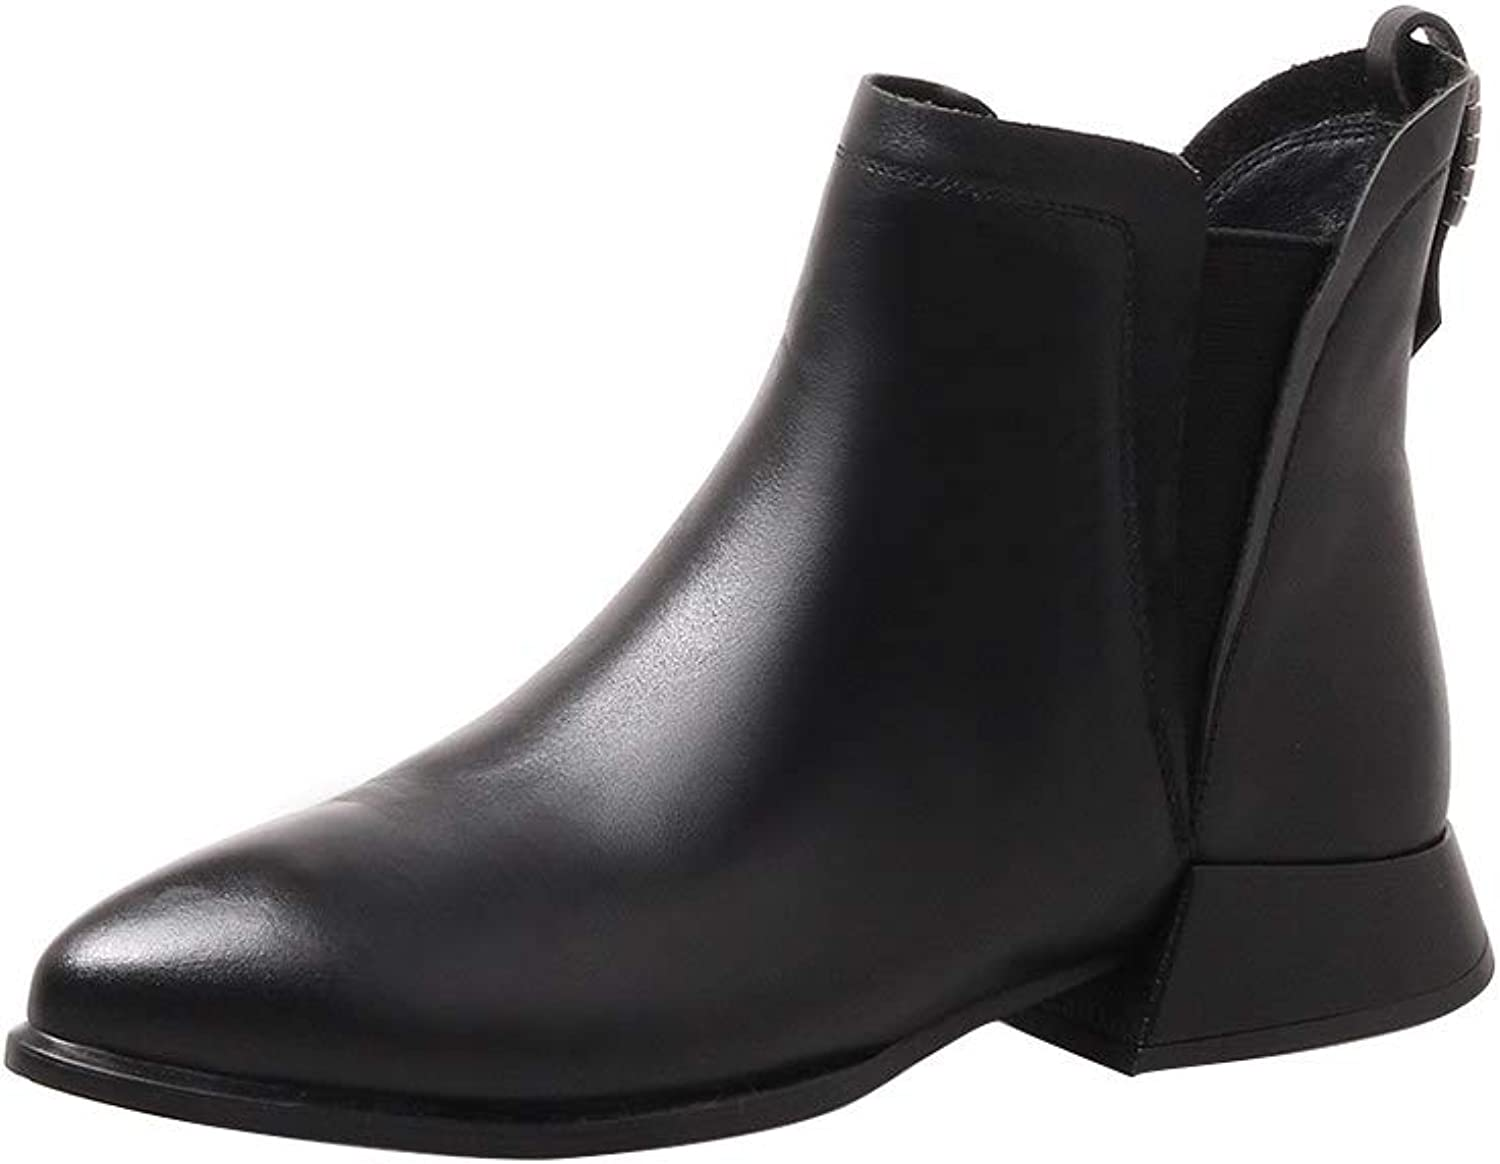 MAYPIE Womens Toalley Leather Zipper Ankle Boots